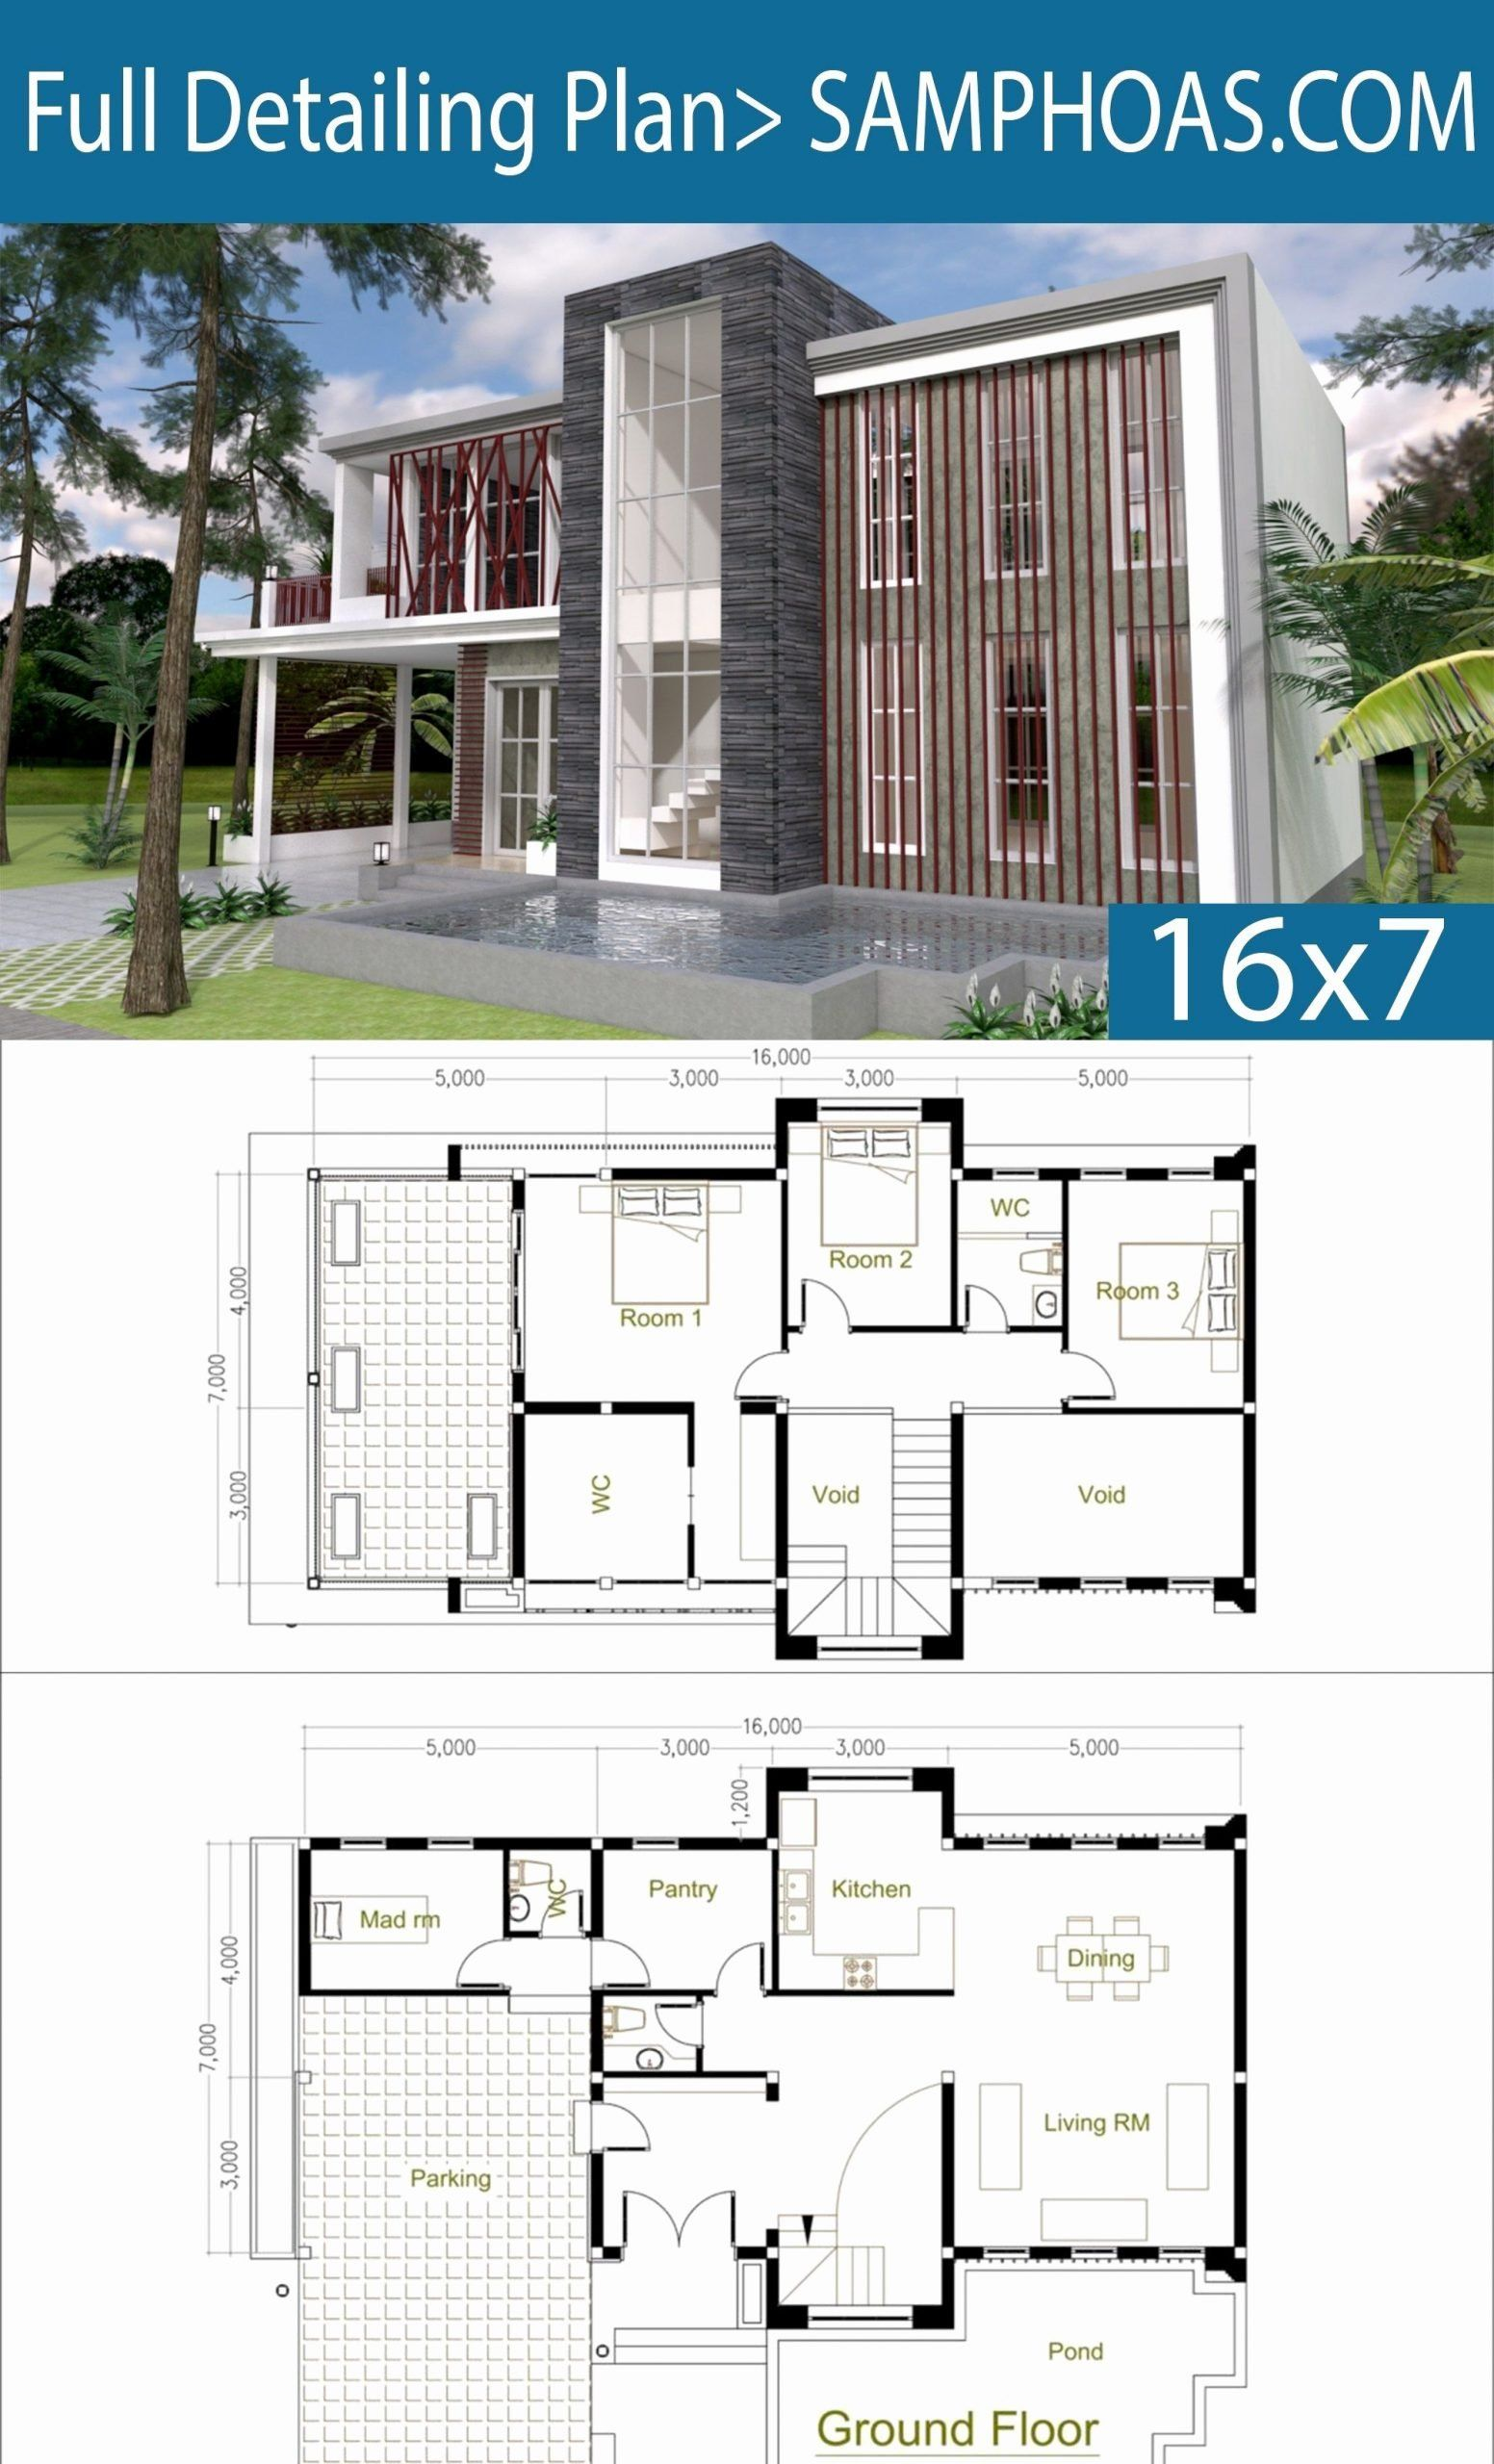 3 Bedroom Contemporary House Plans Inspirational 3 Bedrooms Modern Home Plan 7x16m In 2020 Big Modern Houses Modern House Floor Plans Modern House Plans